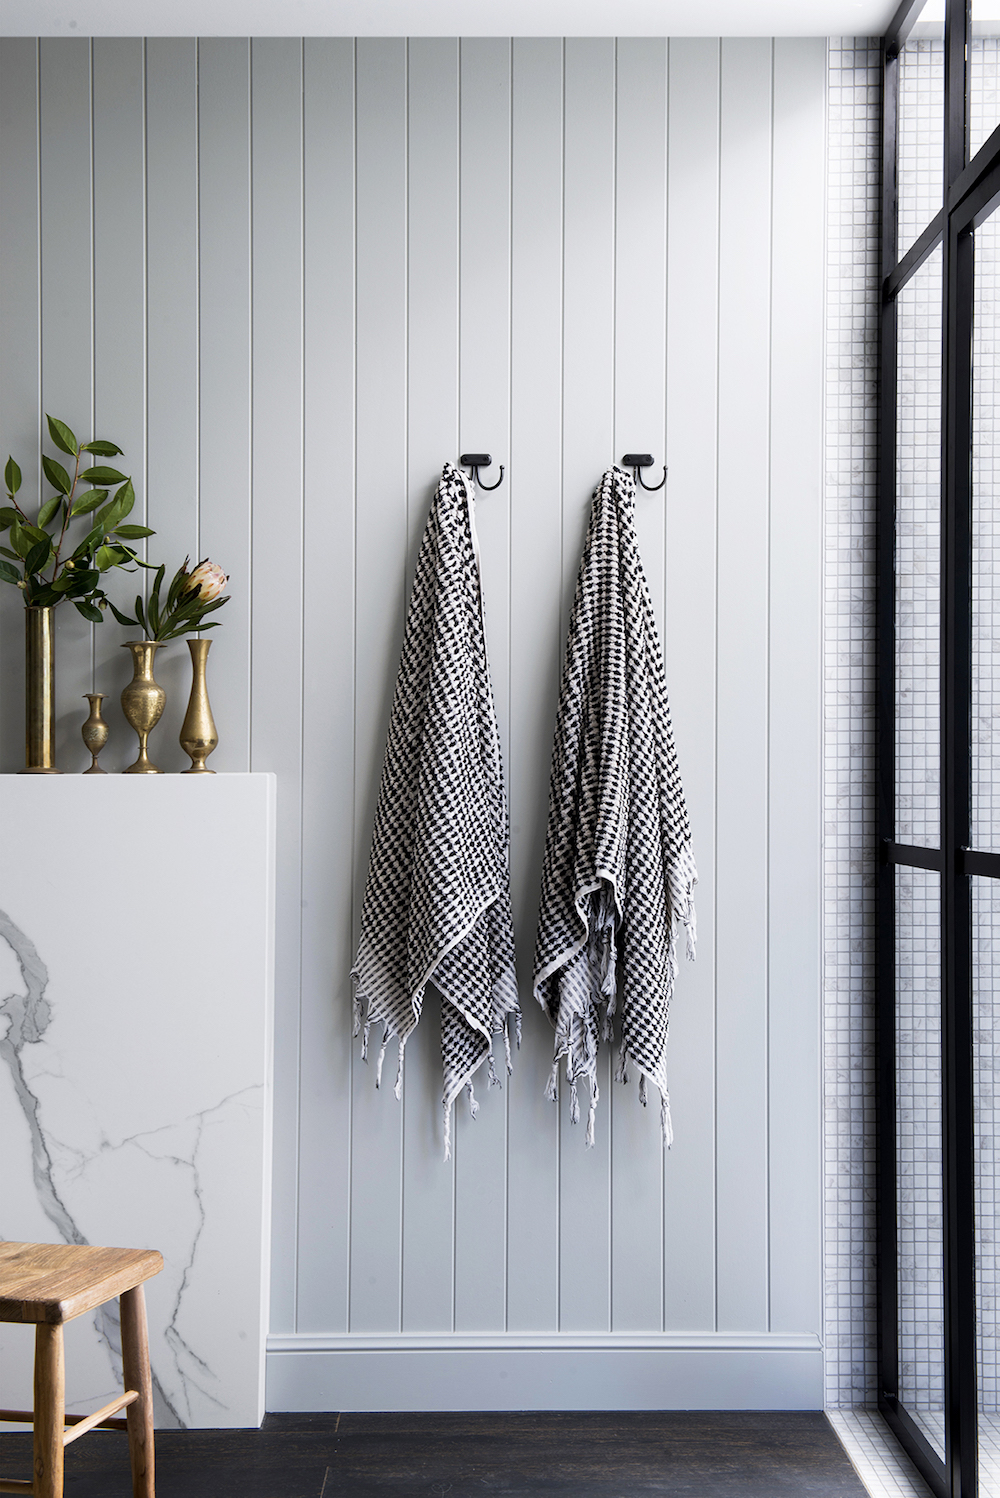 Bathroom renovation tips by First Sense || Pretty bathroom towels